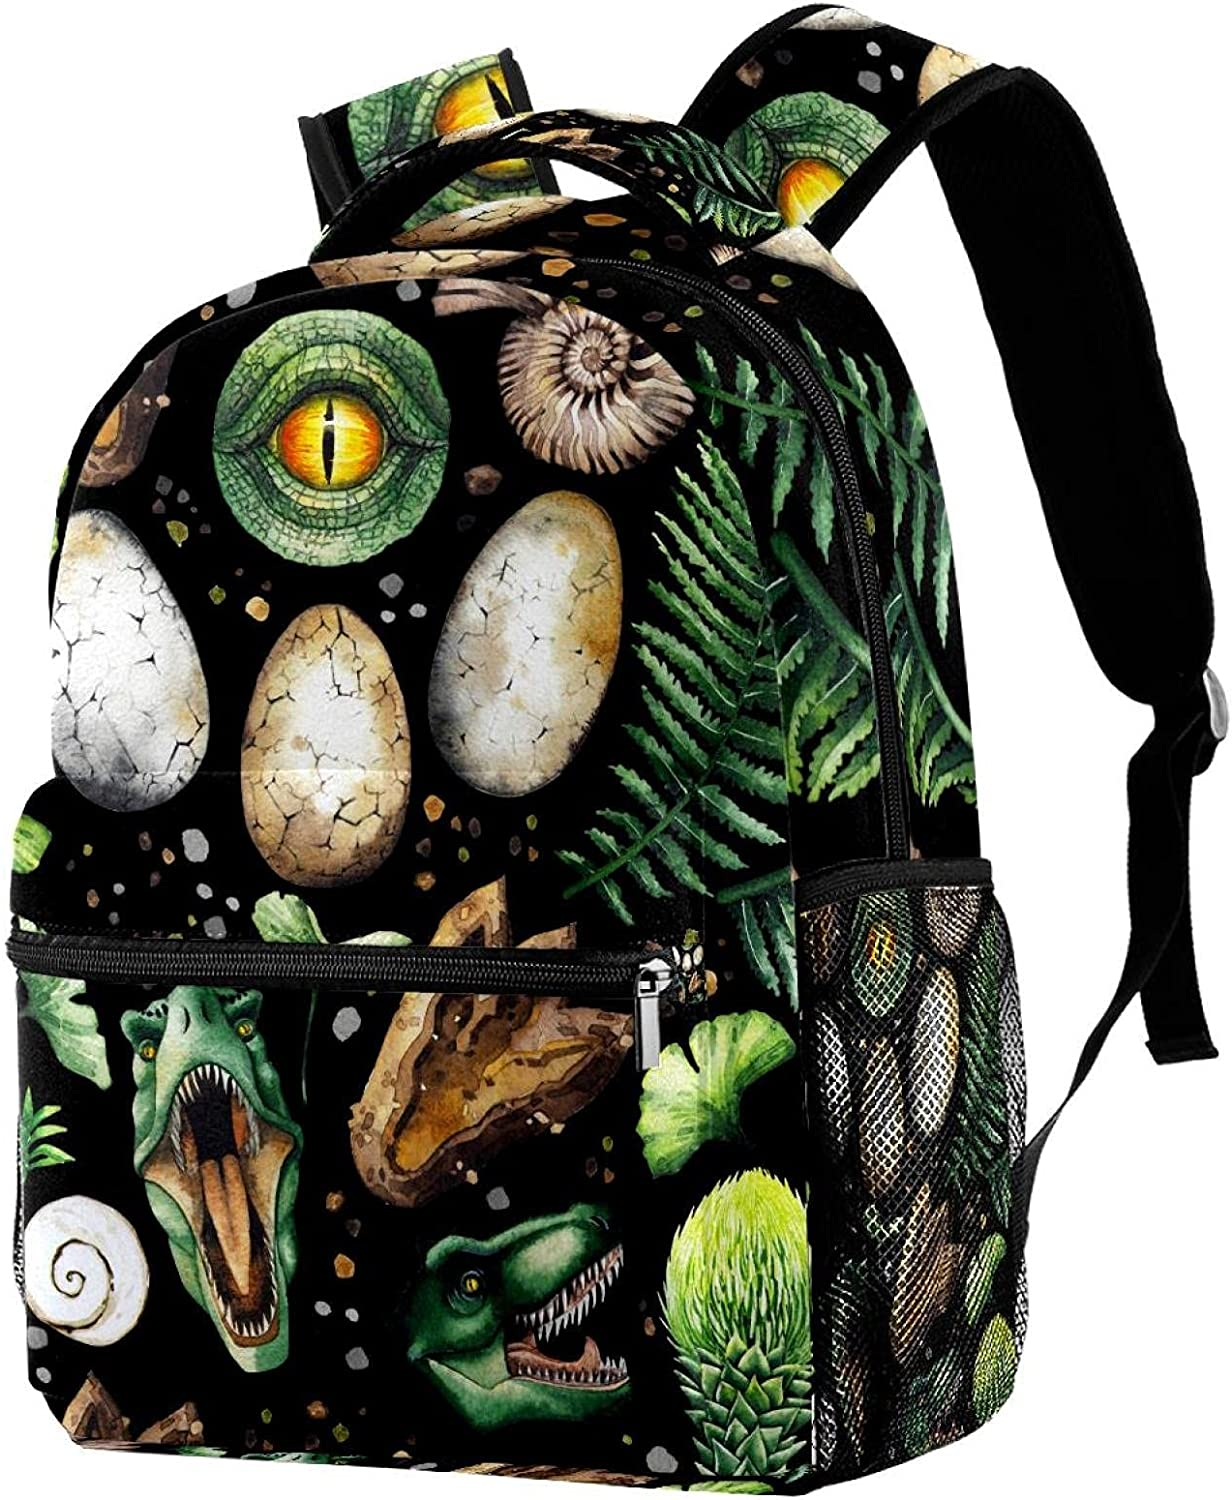 imobaby Dinasour Tropical Casual New Shipping Free Ranking TOP8 Daypack Travel Schoo Large Bags